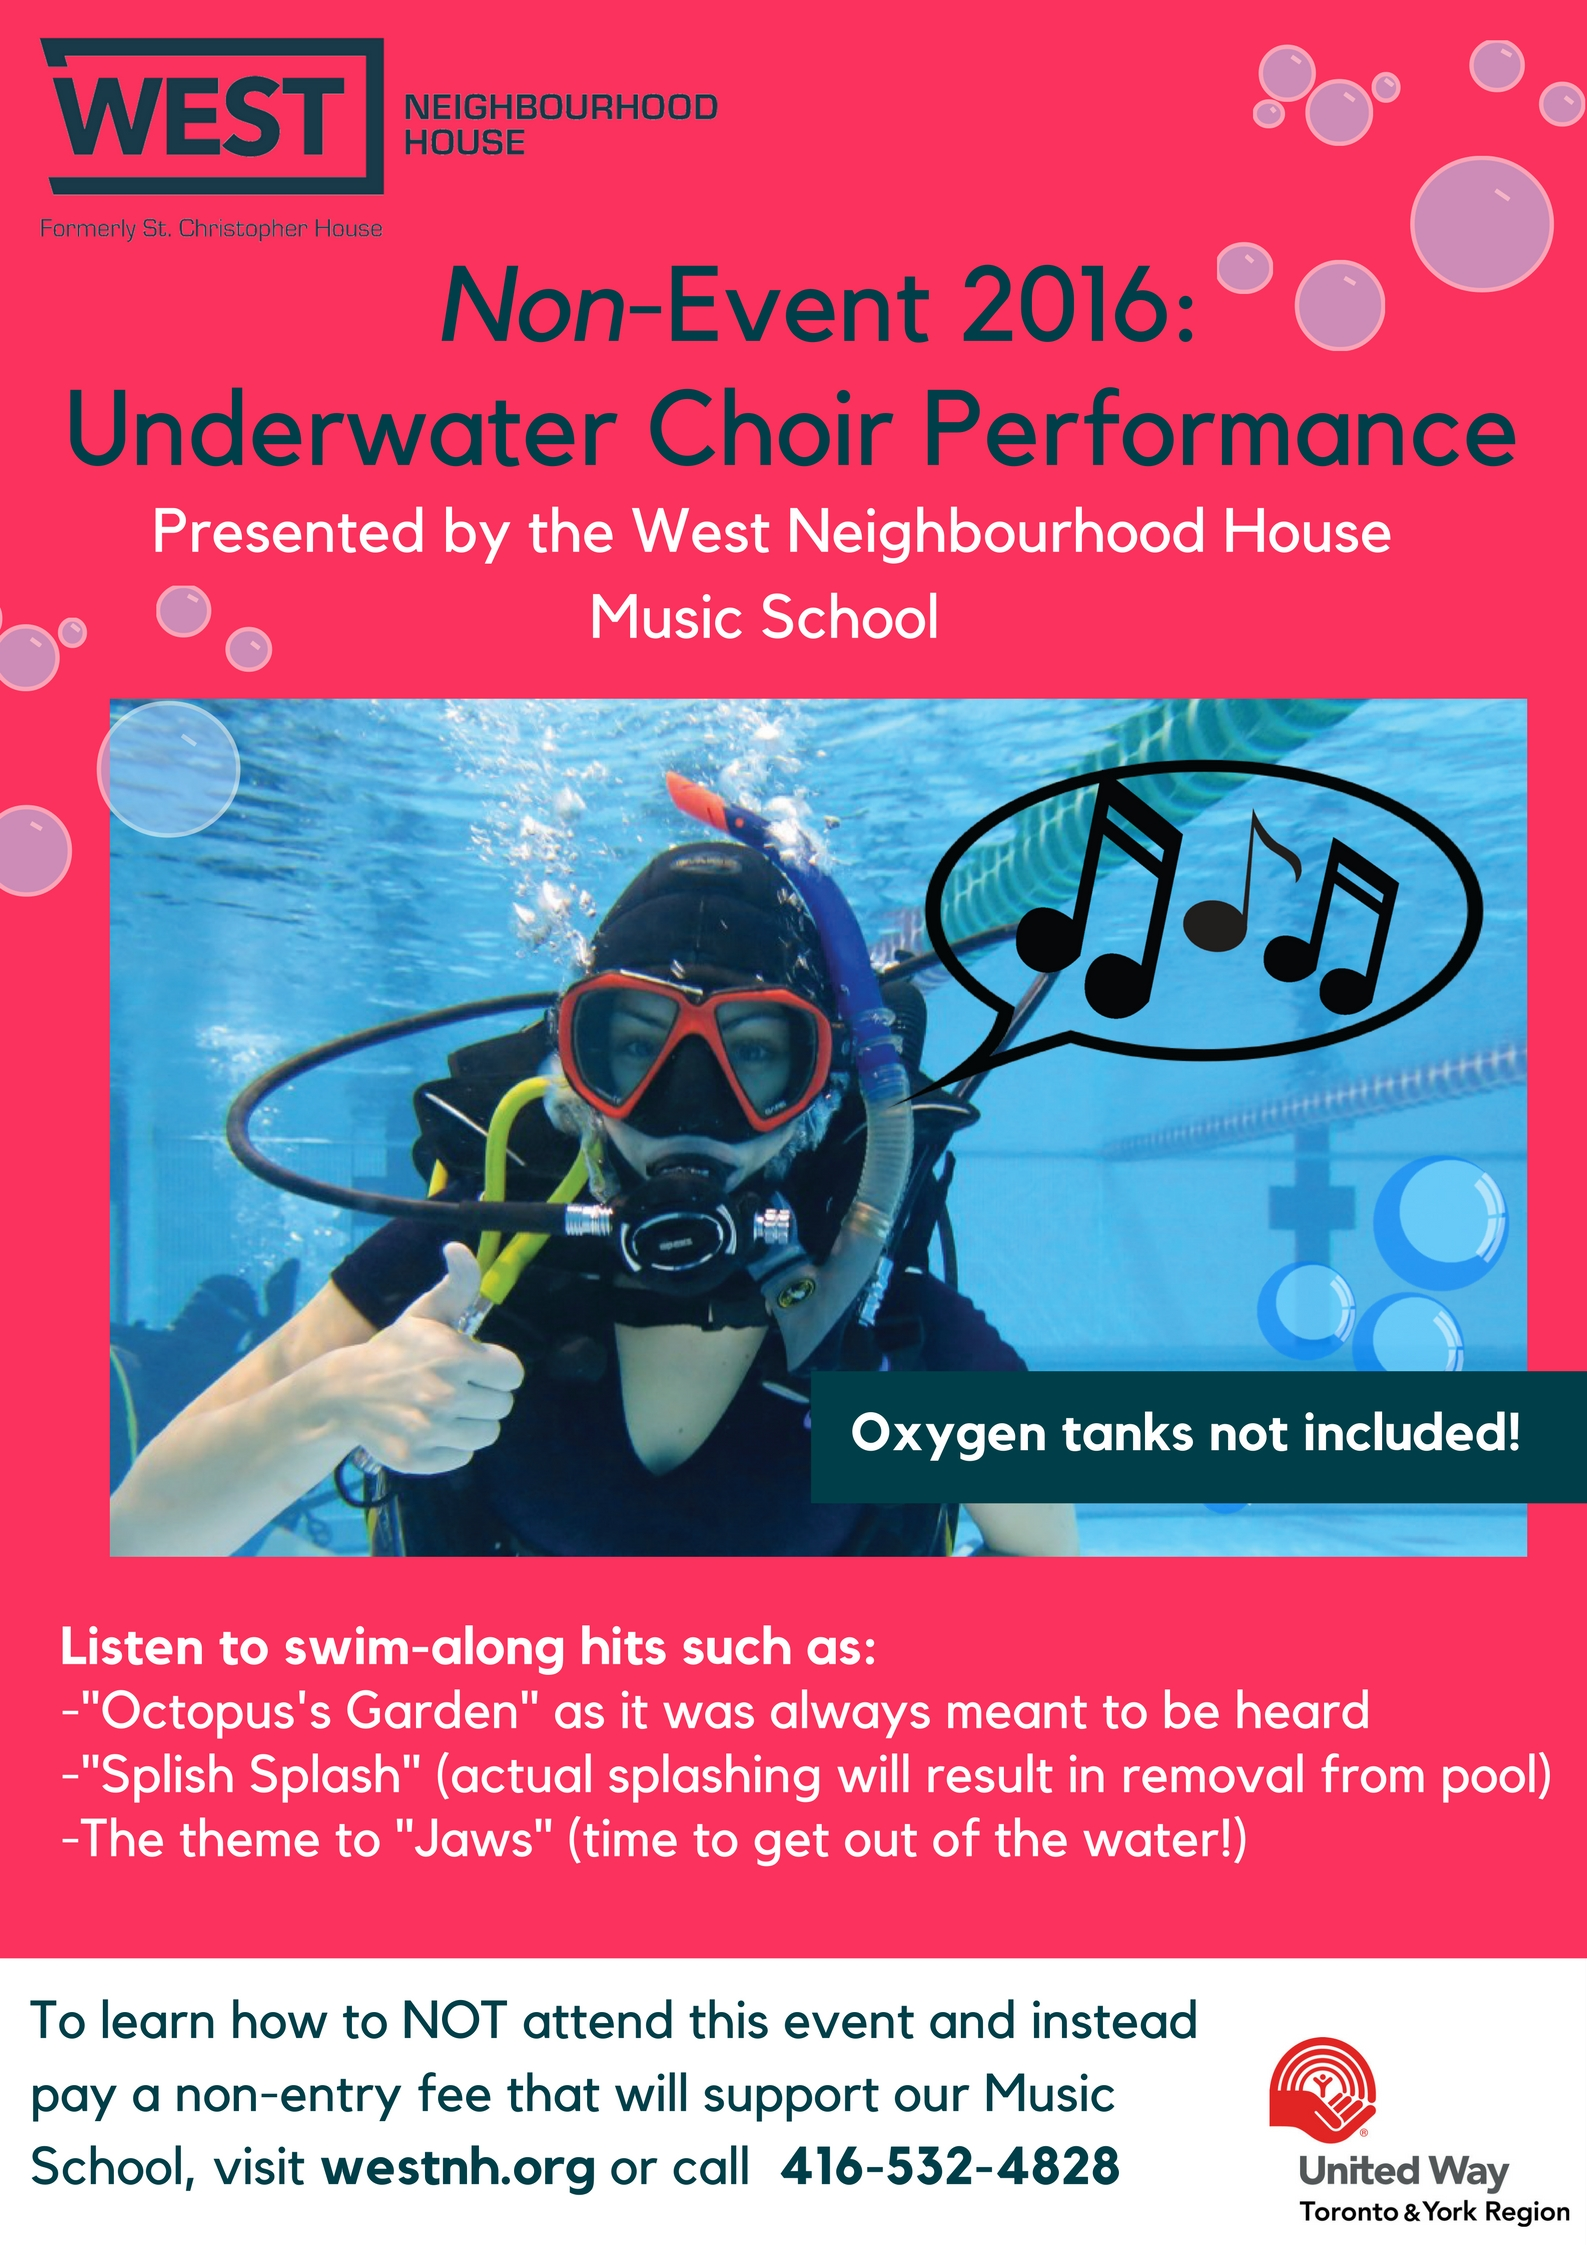 Non-Event 2016 : Underwater Choir Performance